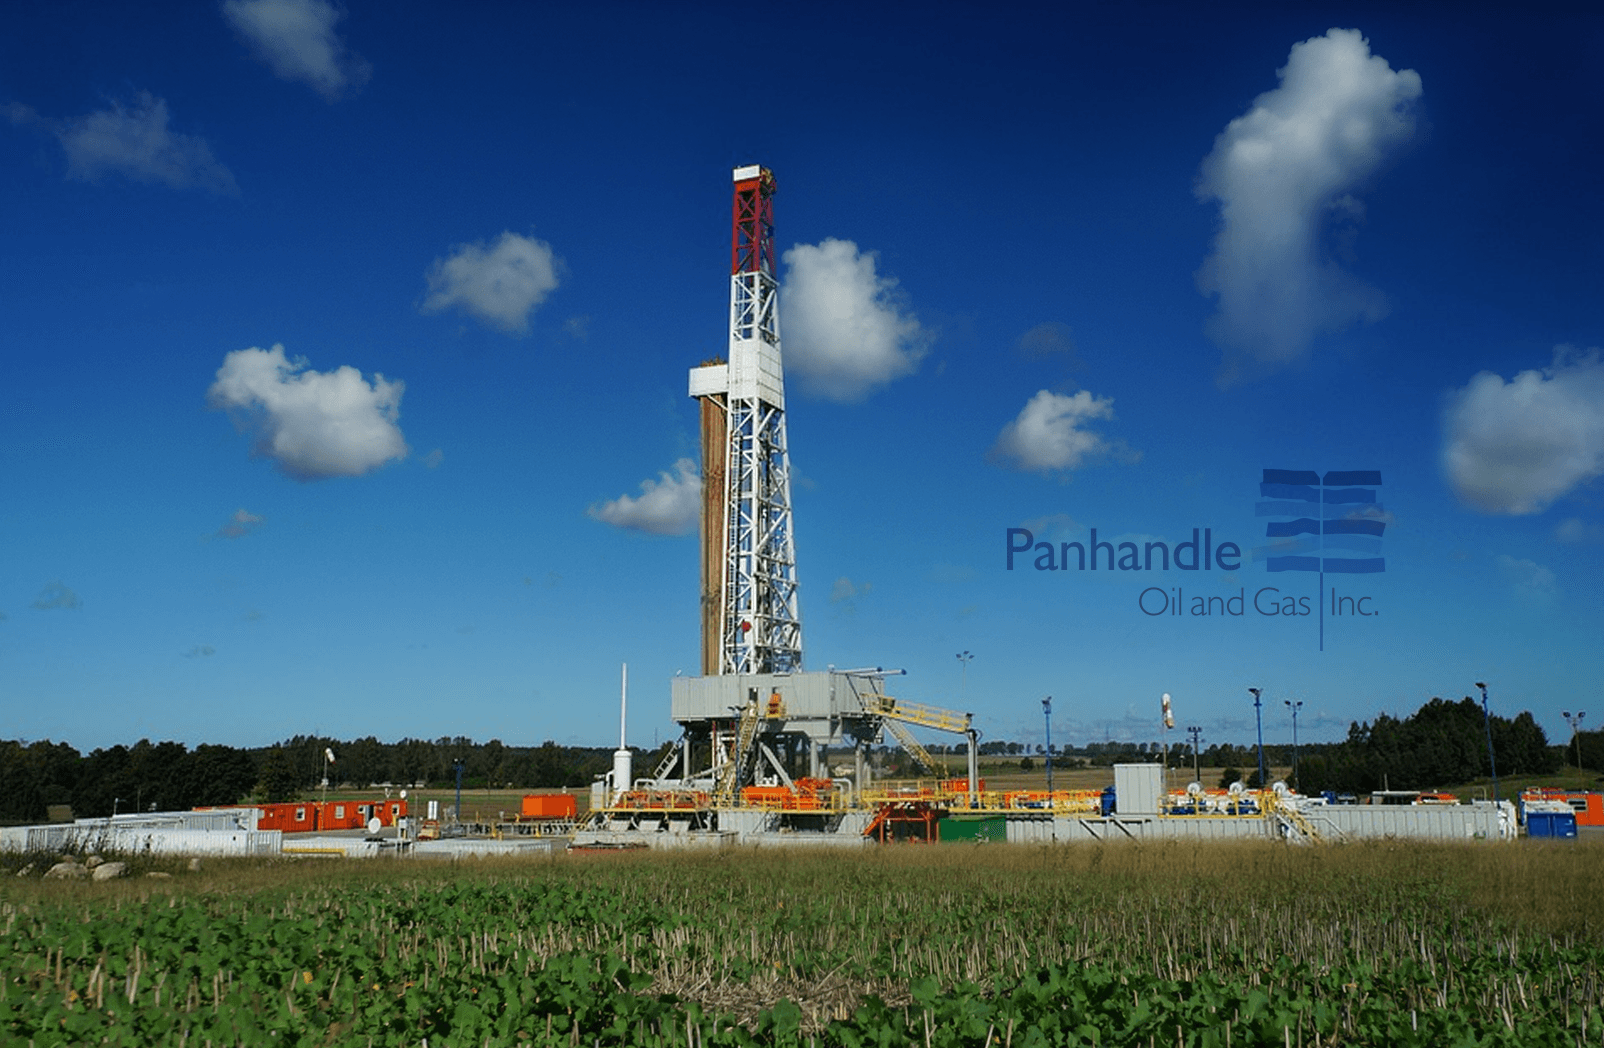 View of oil field rig on a beautiful day with Panhandle Oil and Gas Inc. Logo